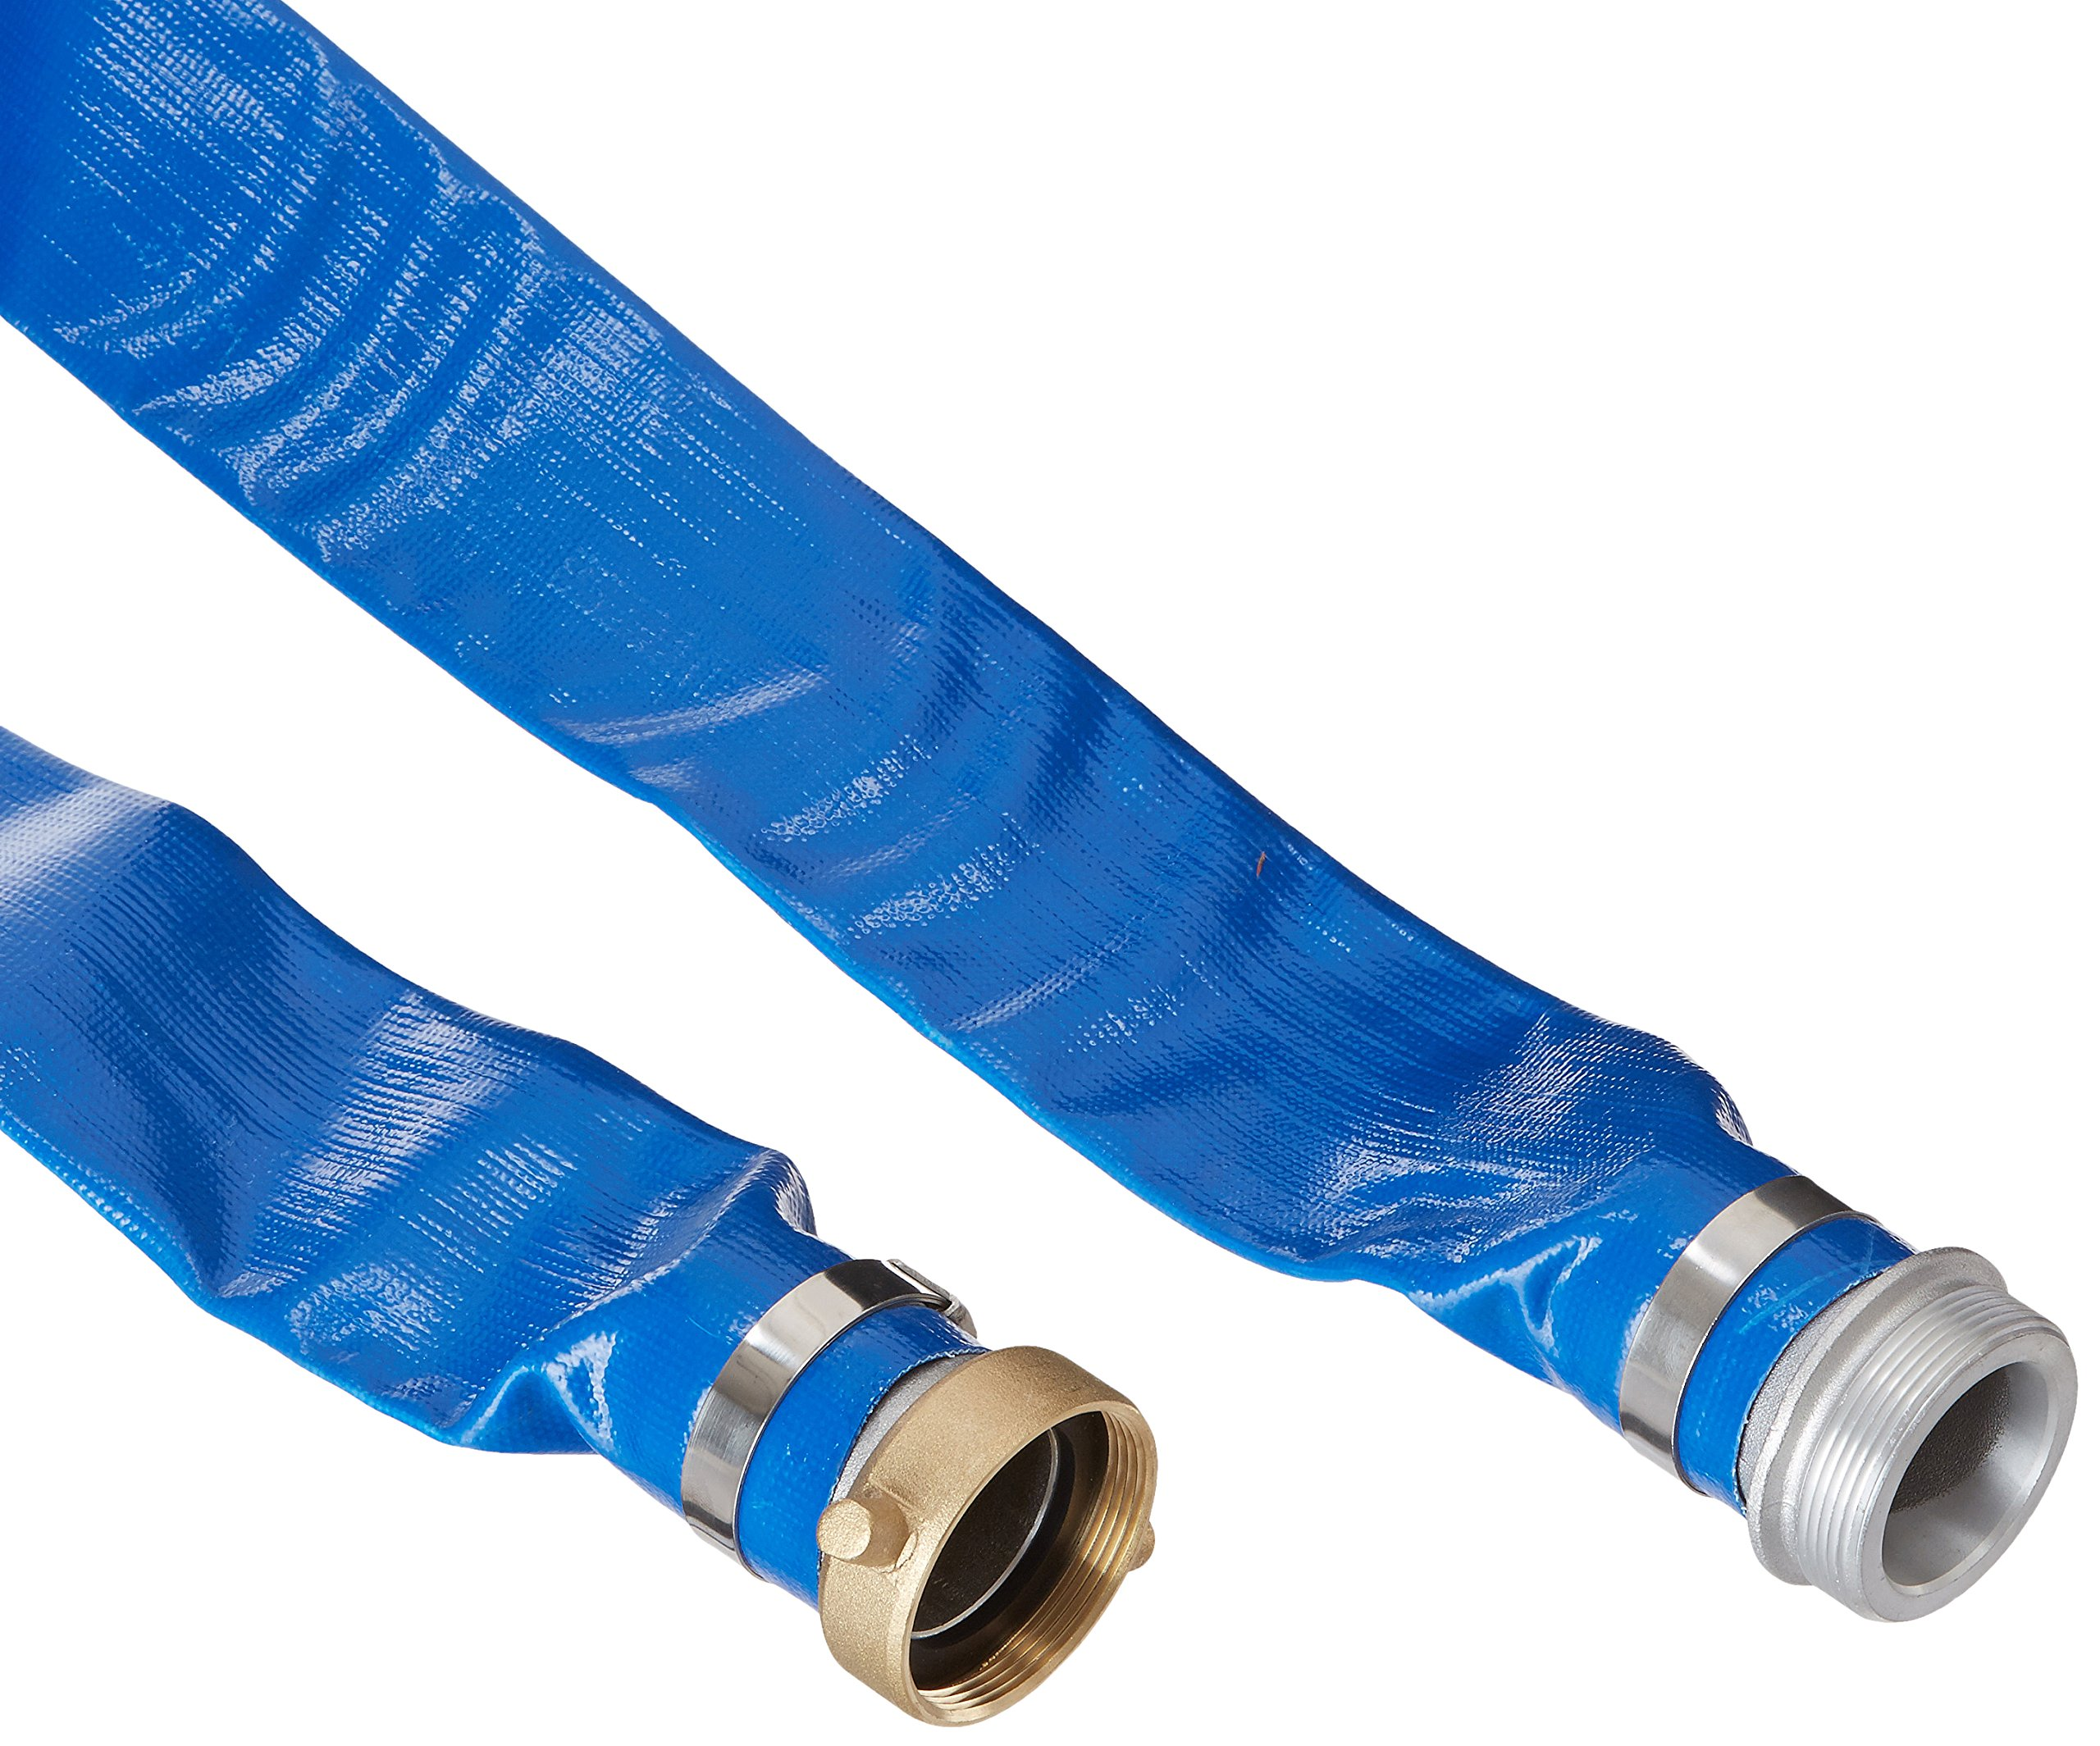 Apache 98138040 2'' x 25' Blue PVC Lay-Flat Discharge Hose with Aluminum Pin Lug Fittings